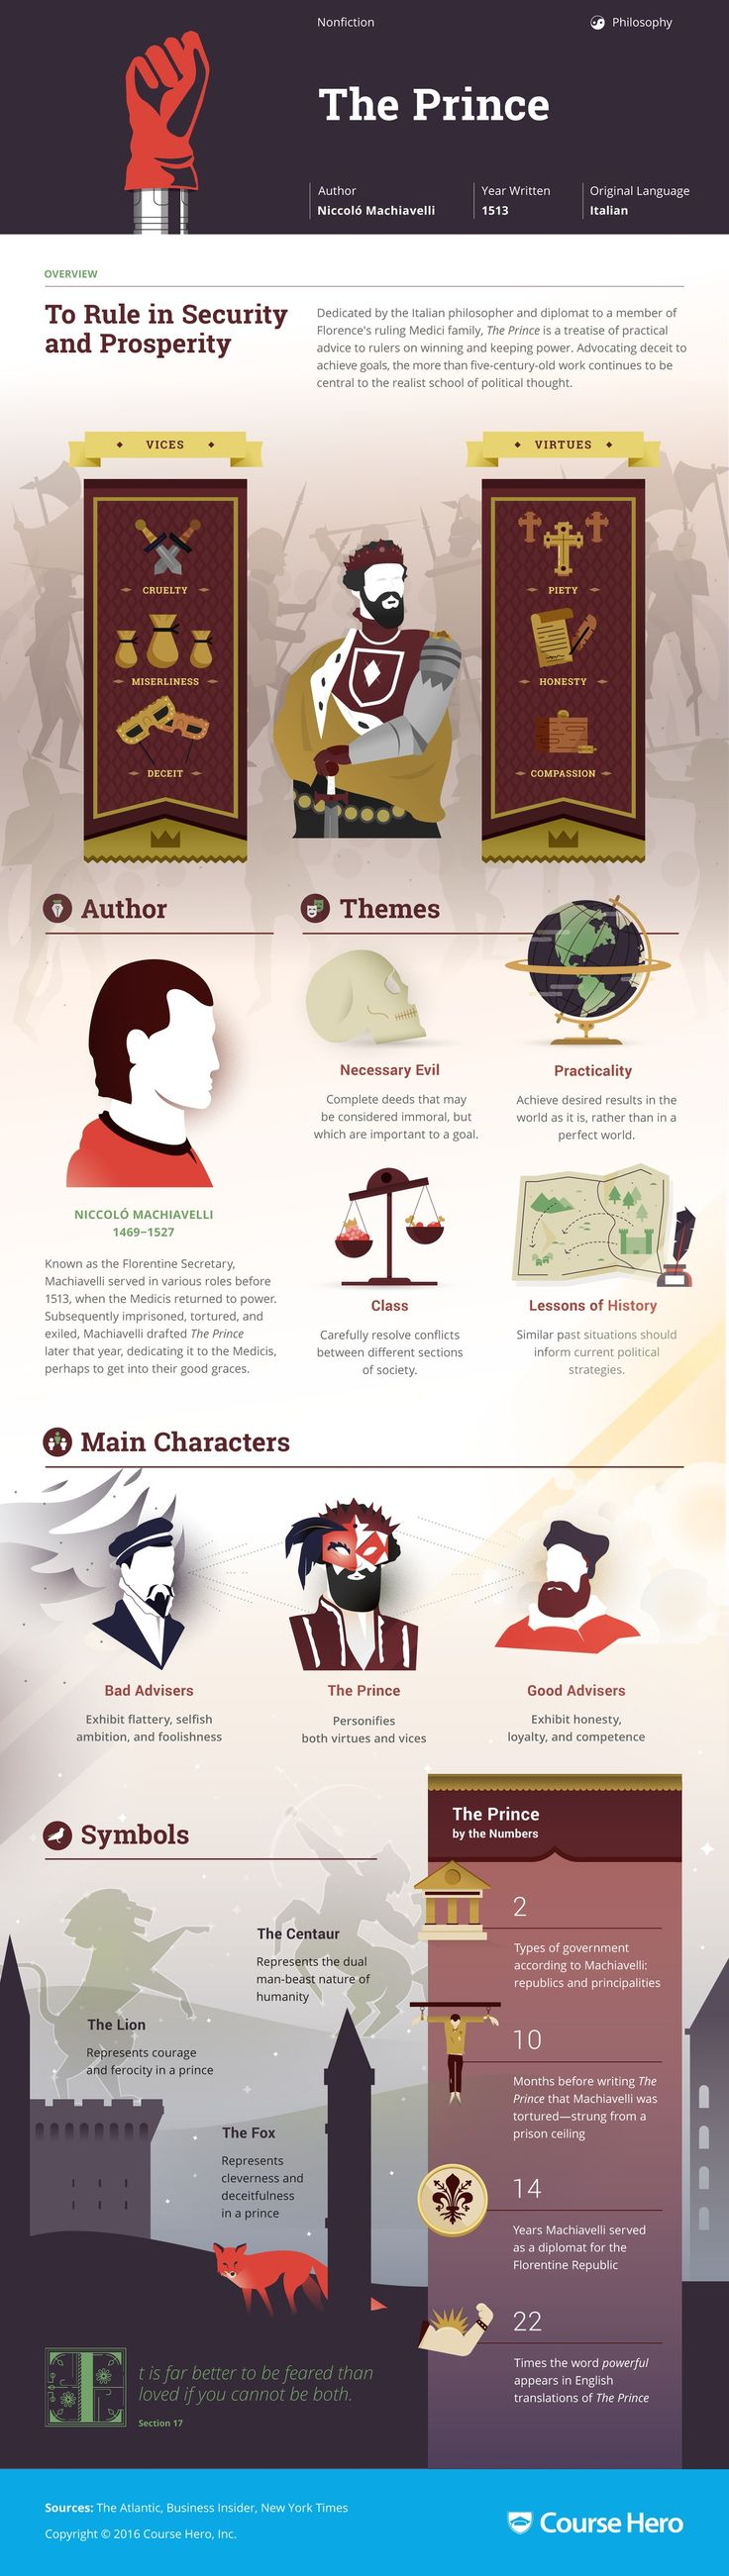 an analysis of themes and ideas in the prince by niccol machiavelli Biographycom presents niccolò machiavelli, italian diplomat and author of  he  then wrote the prince, a handbook for politicians on the use of ruthless,  the  main theme of this short work about monarchal rule and survival.